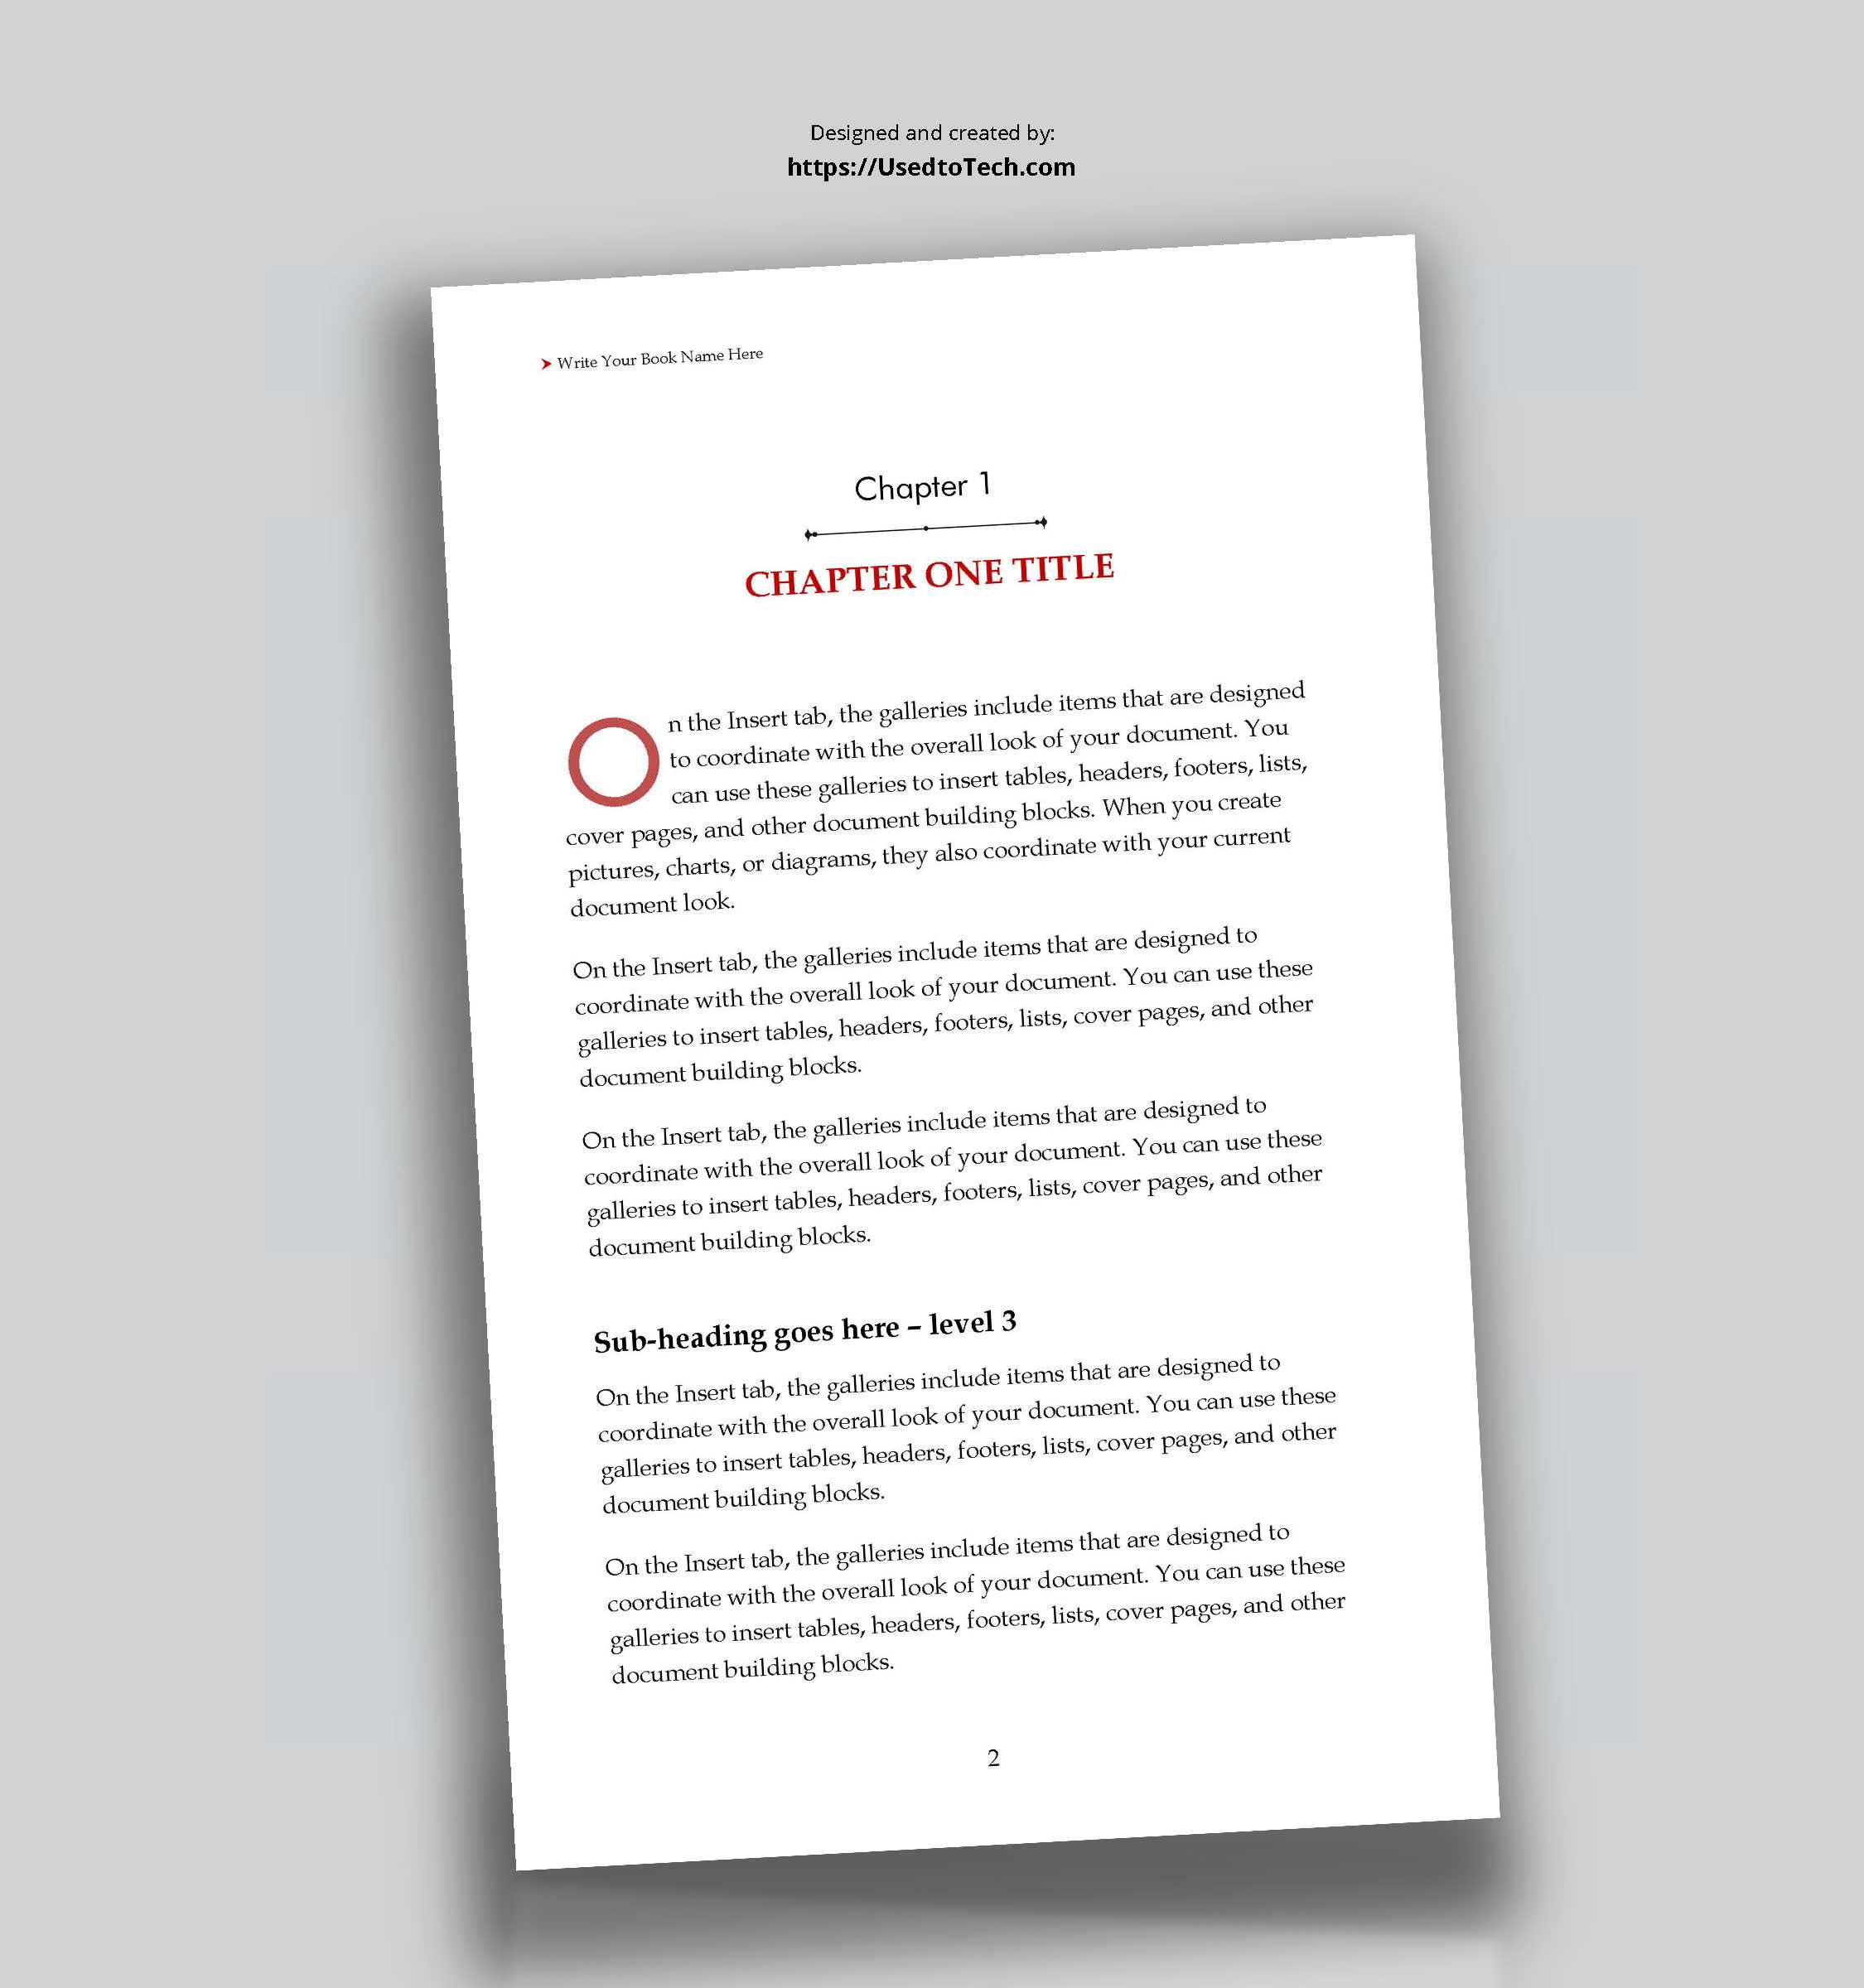 5 X 8 Editable Book Template In Word - Used To Tech With How To Create A Book Template In Word